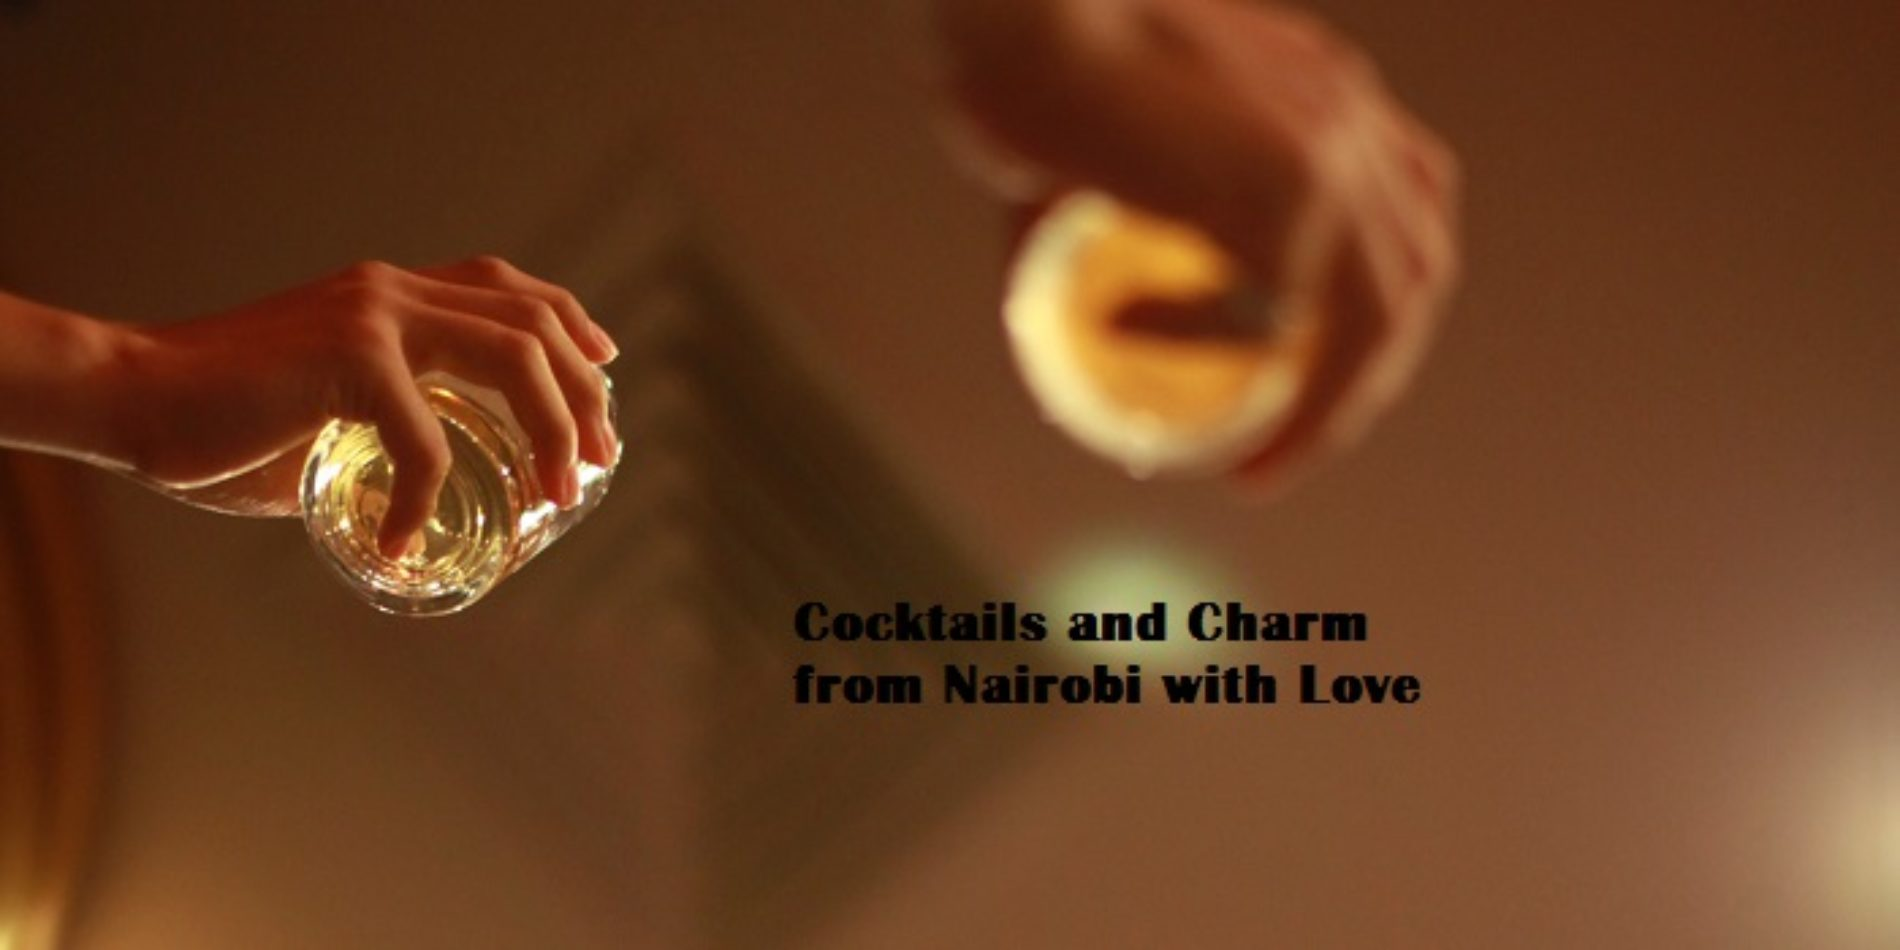 Cocktails and Charm from Nairobi with Love